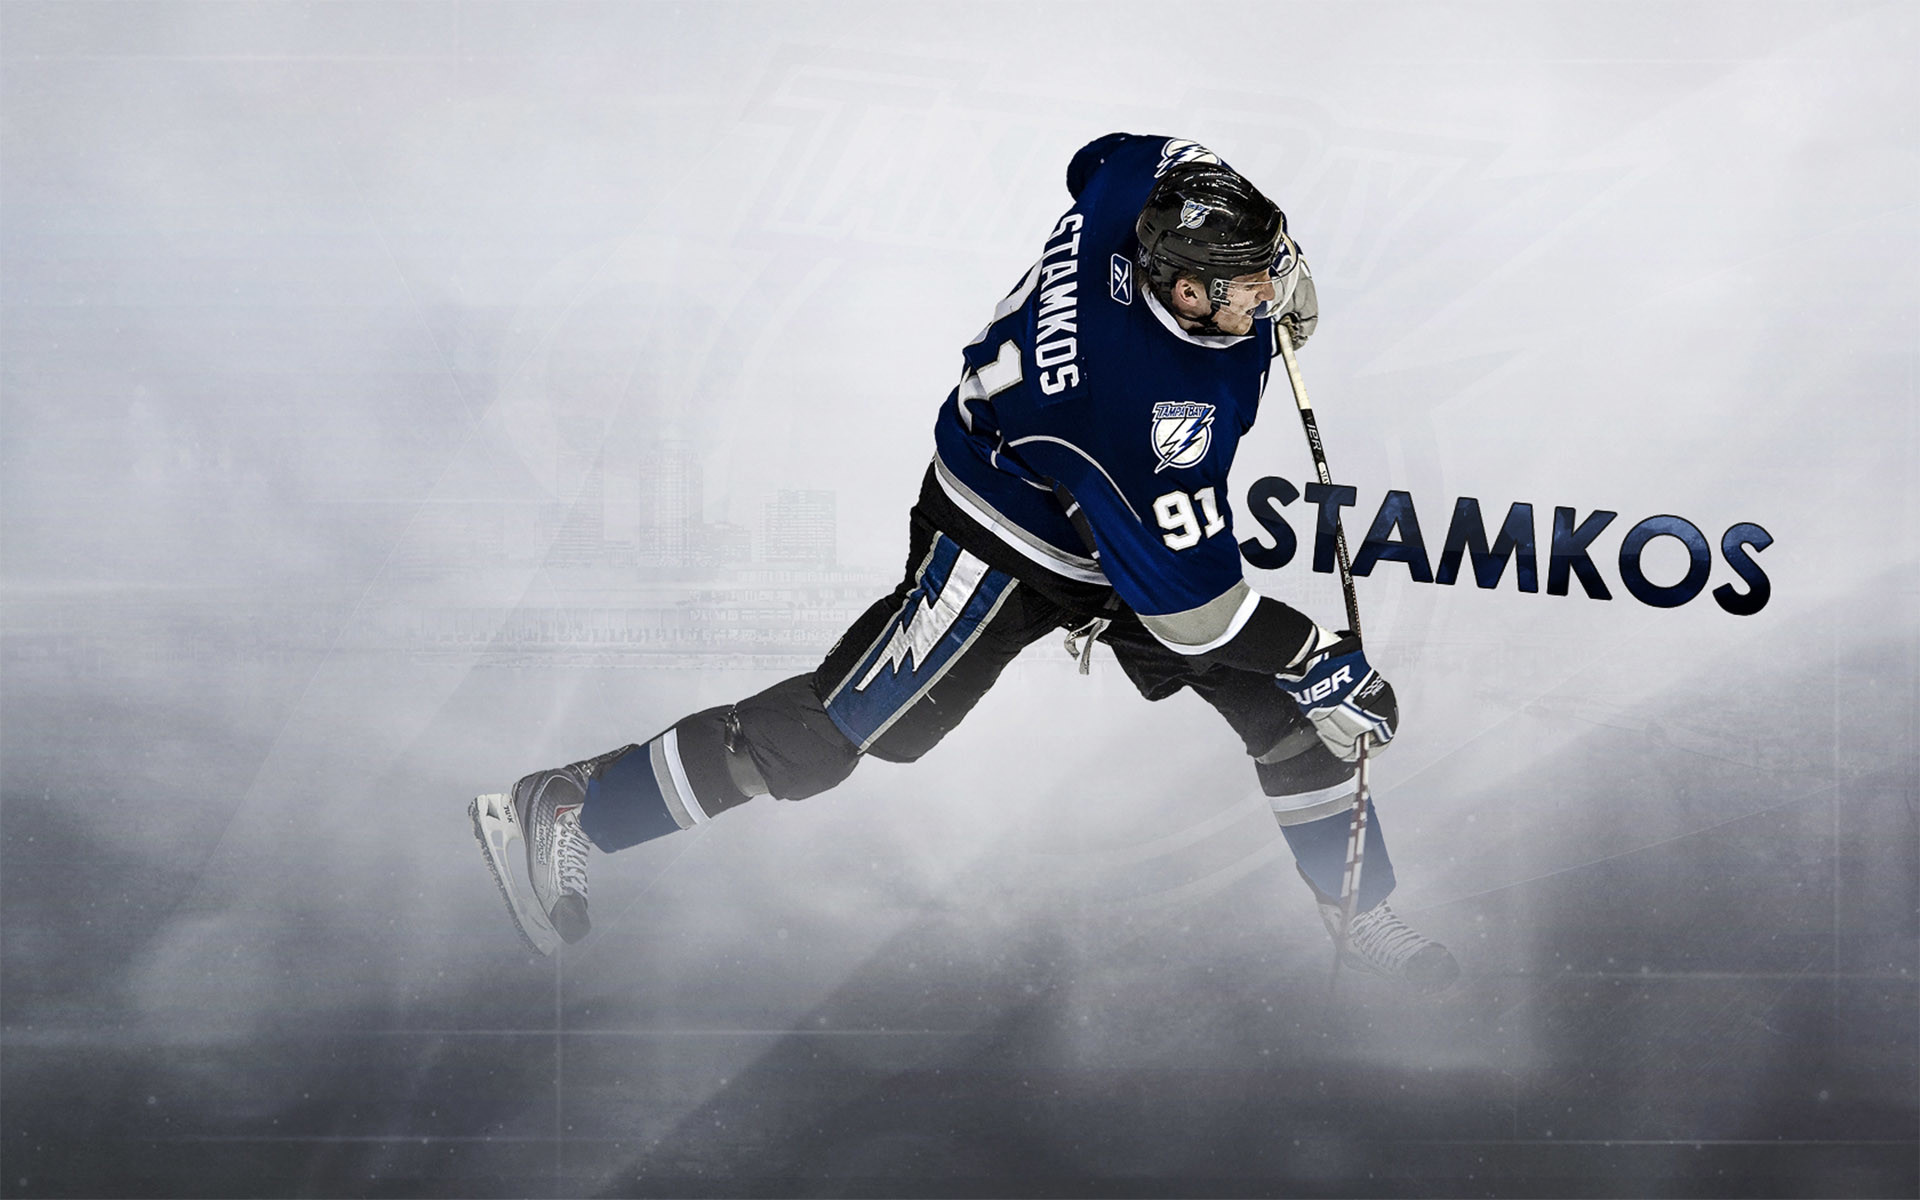 Ice hockey wallpaper 74 images 1920x1200 free hockey wallpaper downloads 173 56486 desktop wallpapers sciox Choice Image